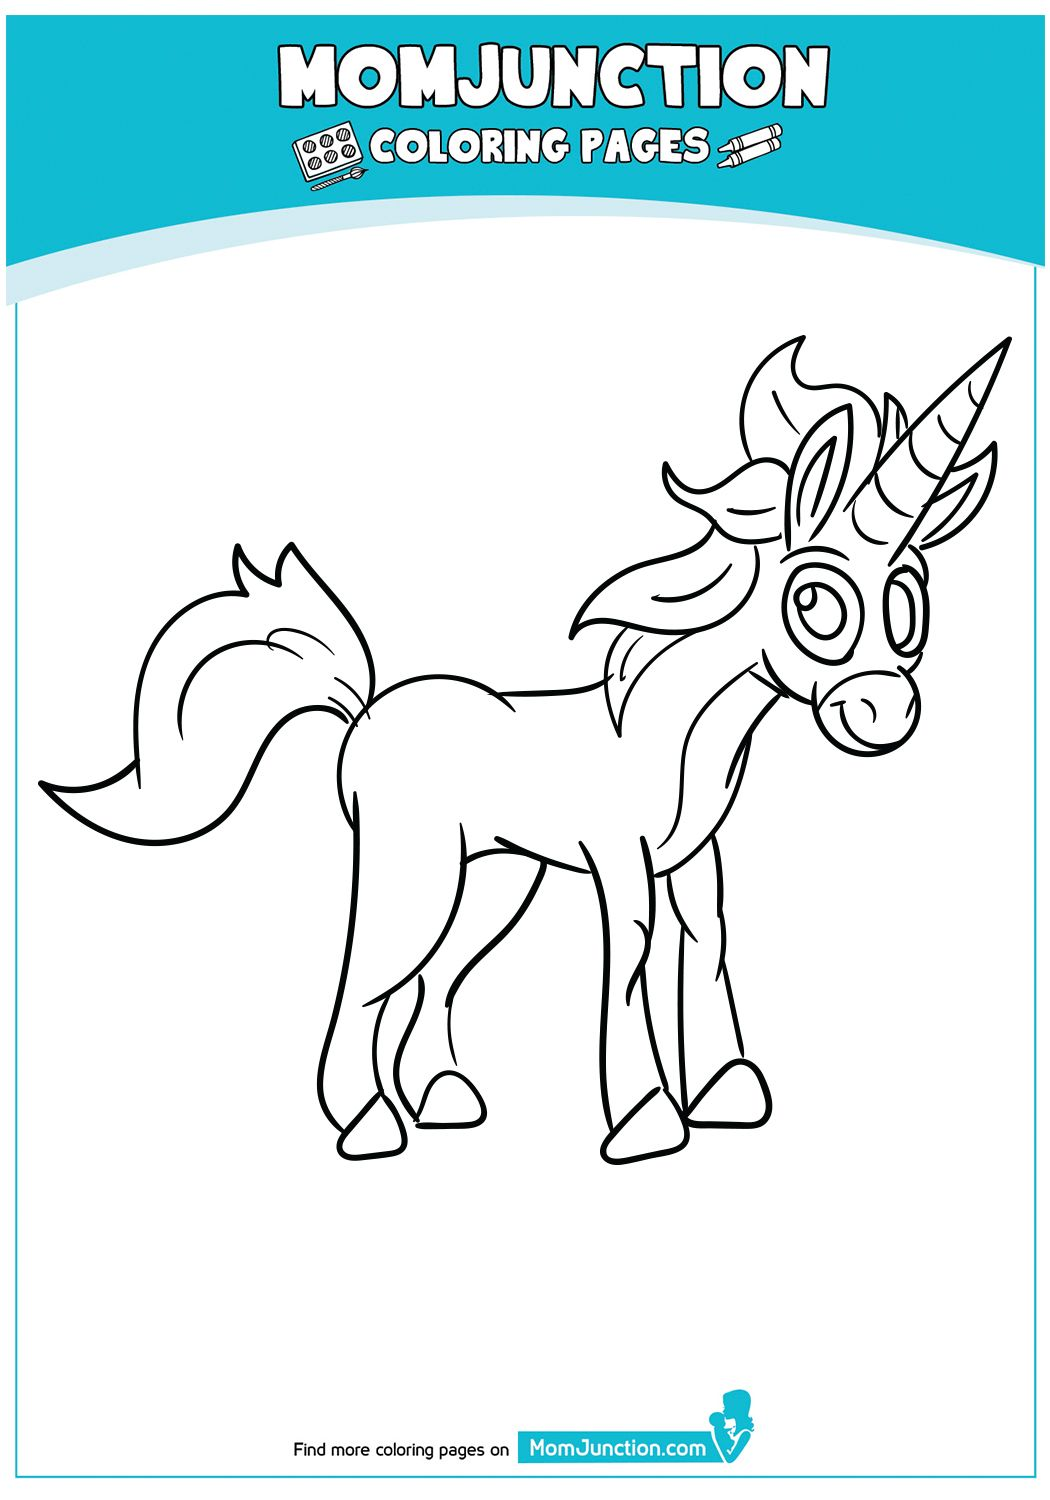 Beautiful Unicorn Head Coloring Page Unicorn Coloring Pages Coloring Pages Kids Christmas Coloring Pages